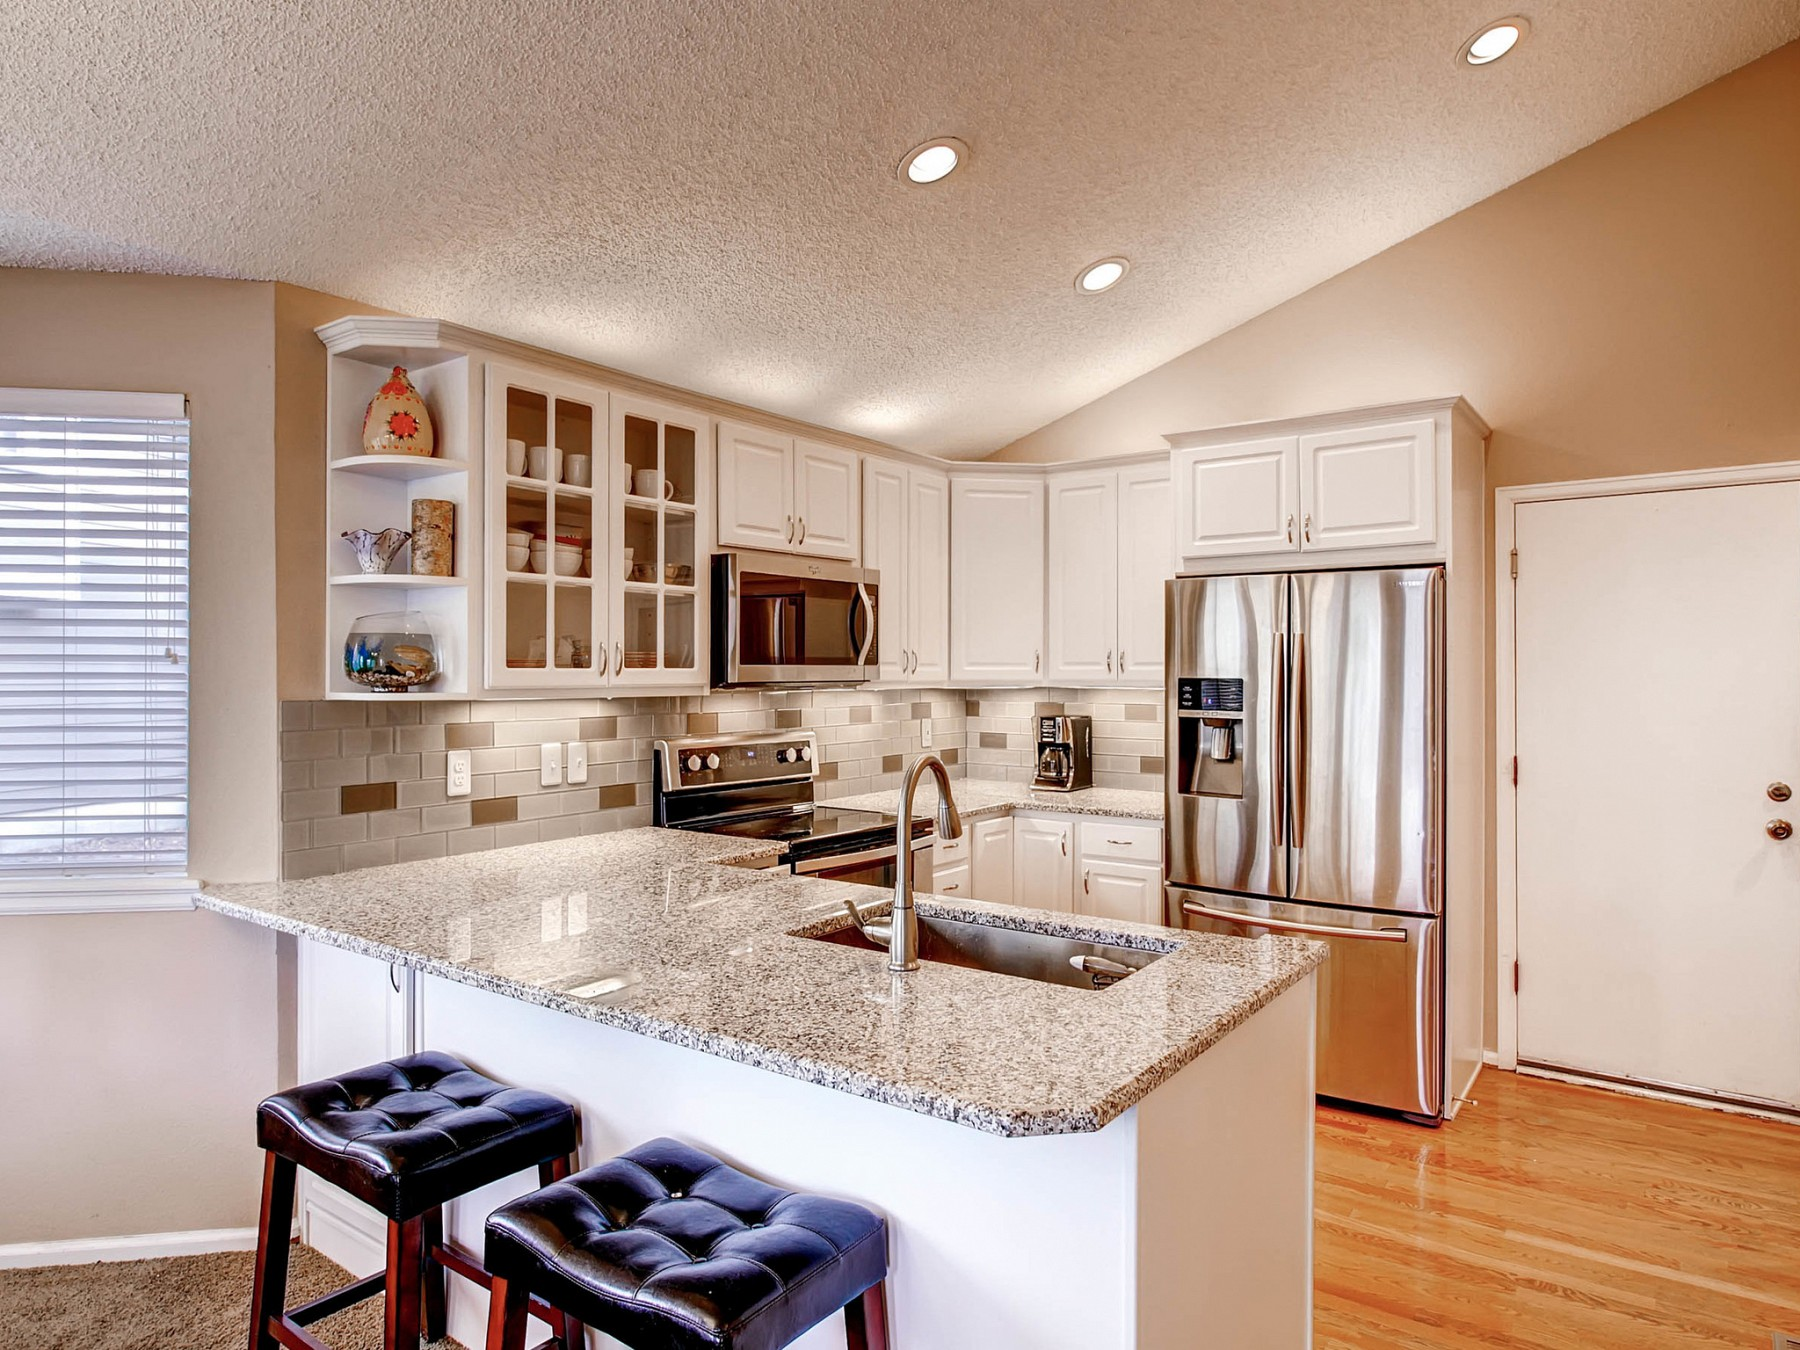 6971 South Dover Way, Littleton, CO 80128